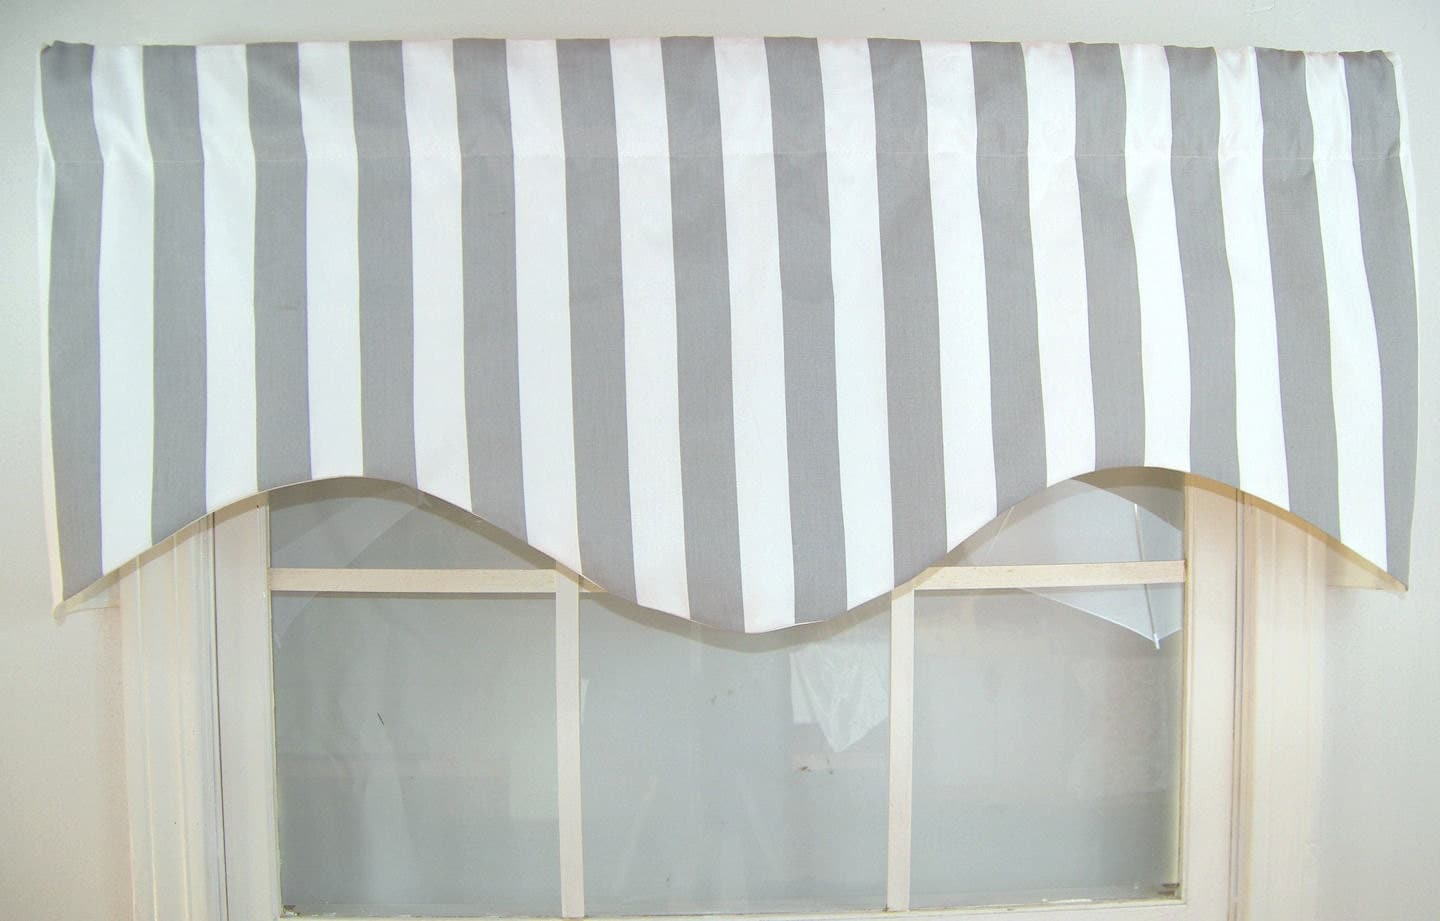 Awning Striped Shaped Valance in grey and whitenavy and